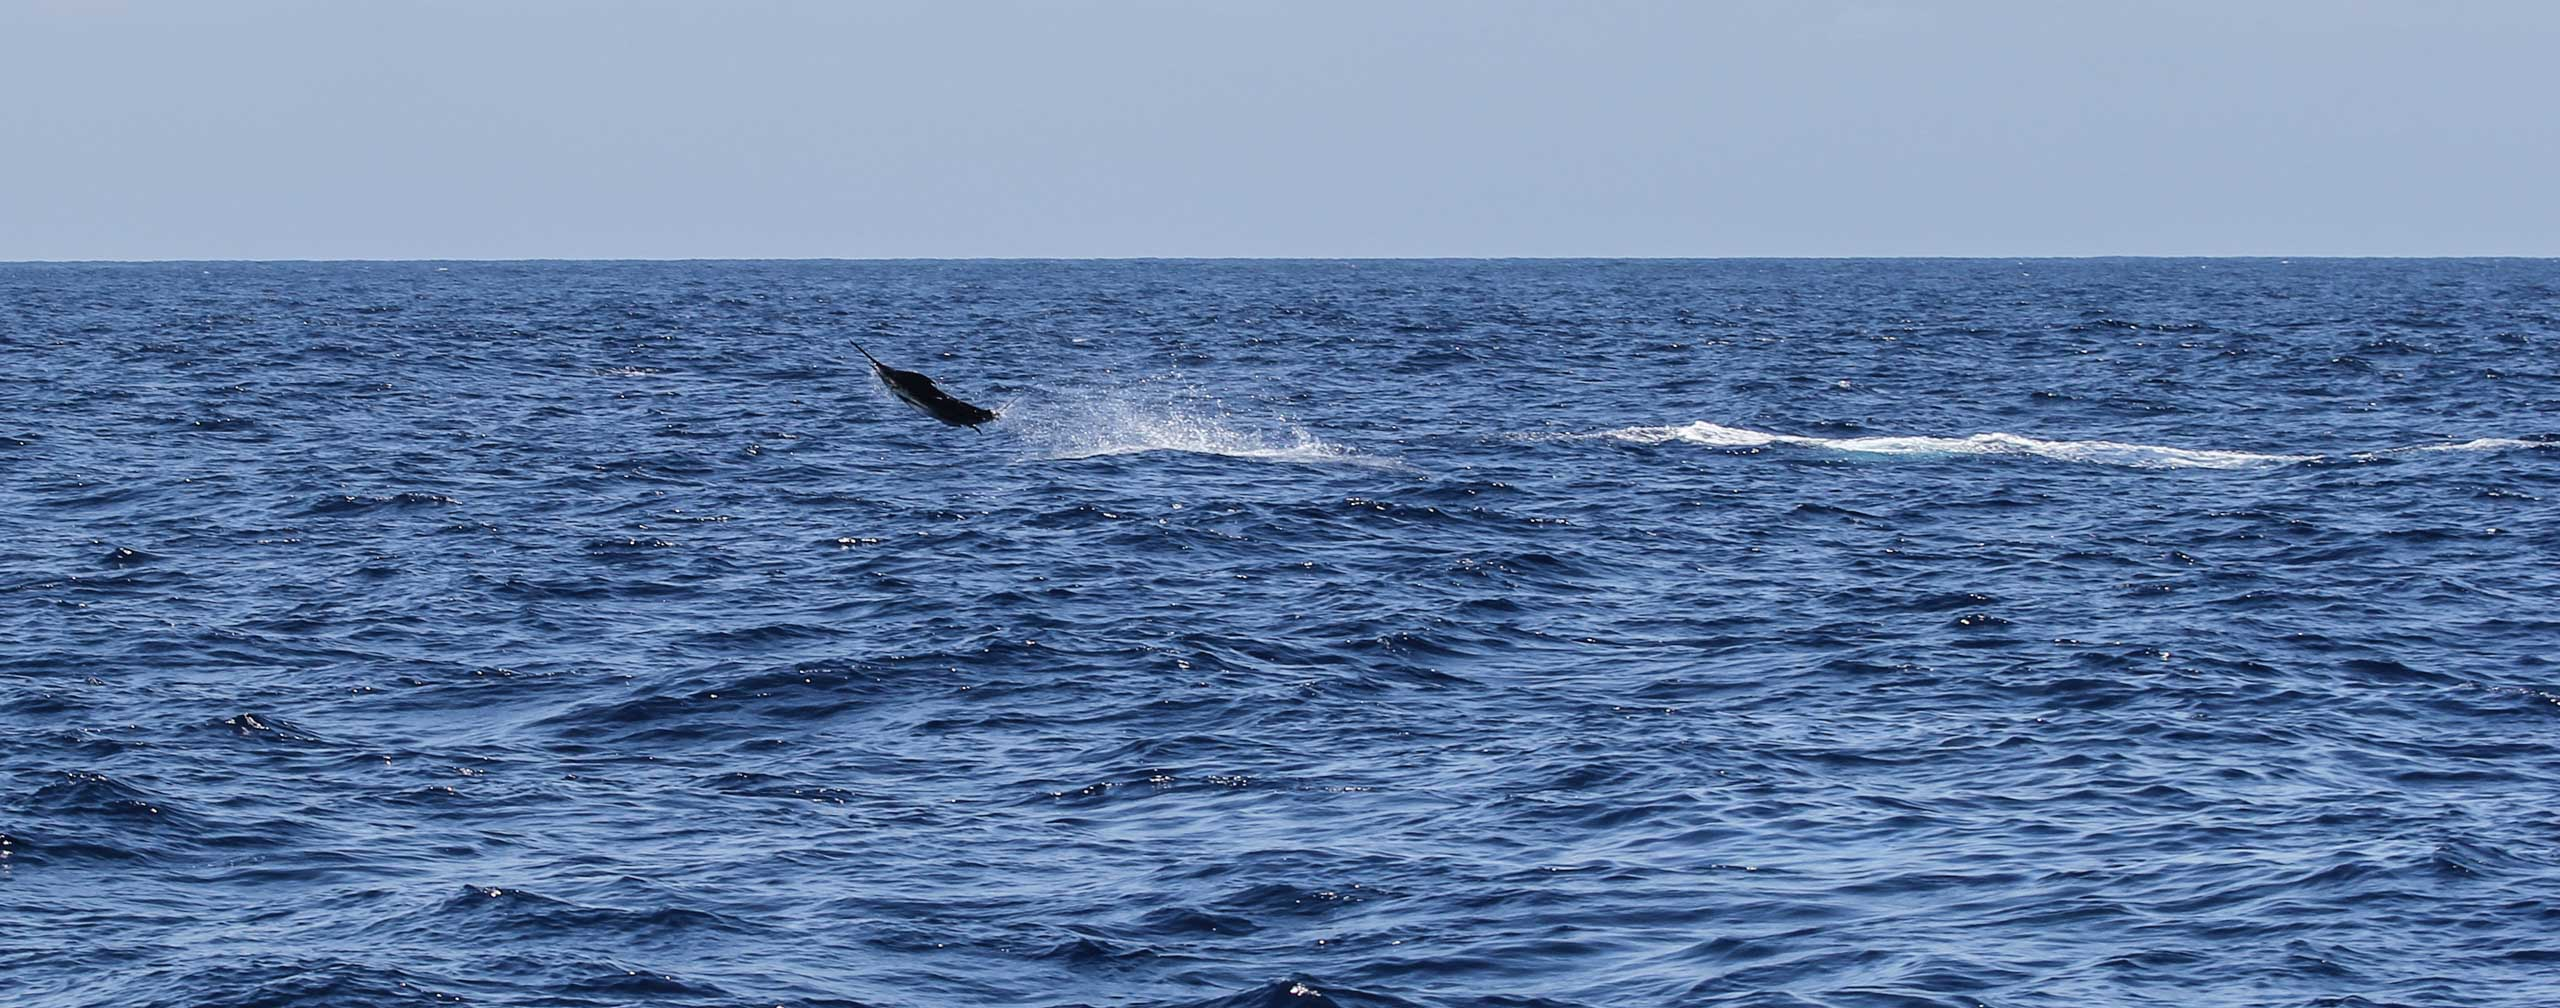 Blue Marlin displaying behind Unreel